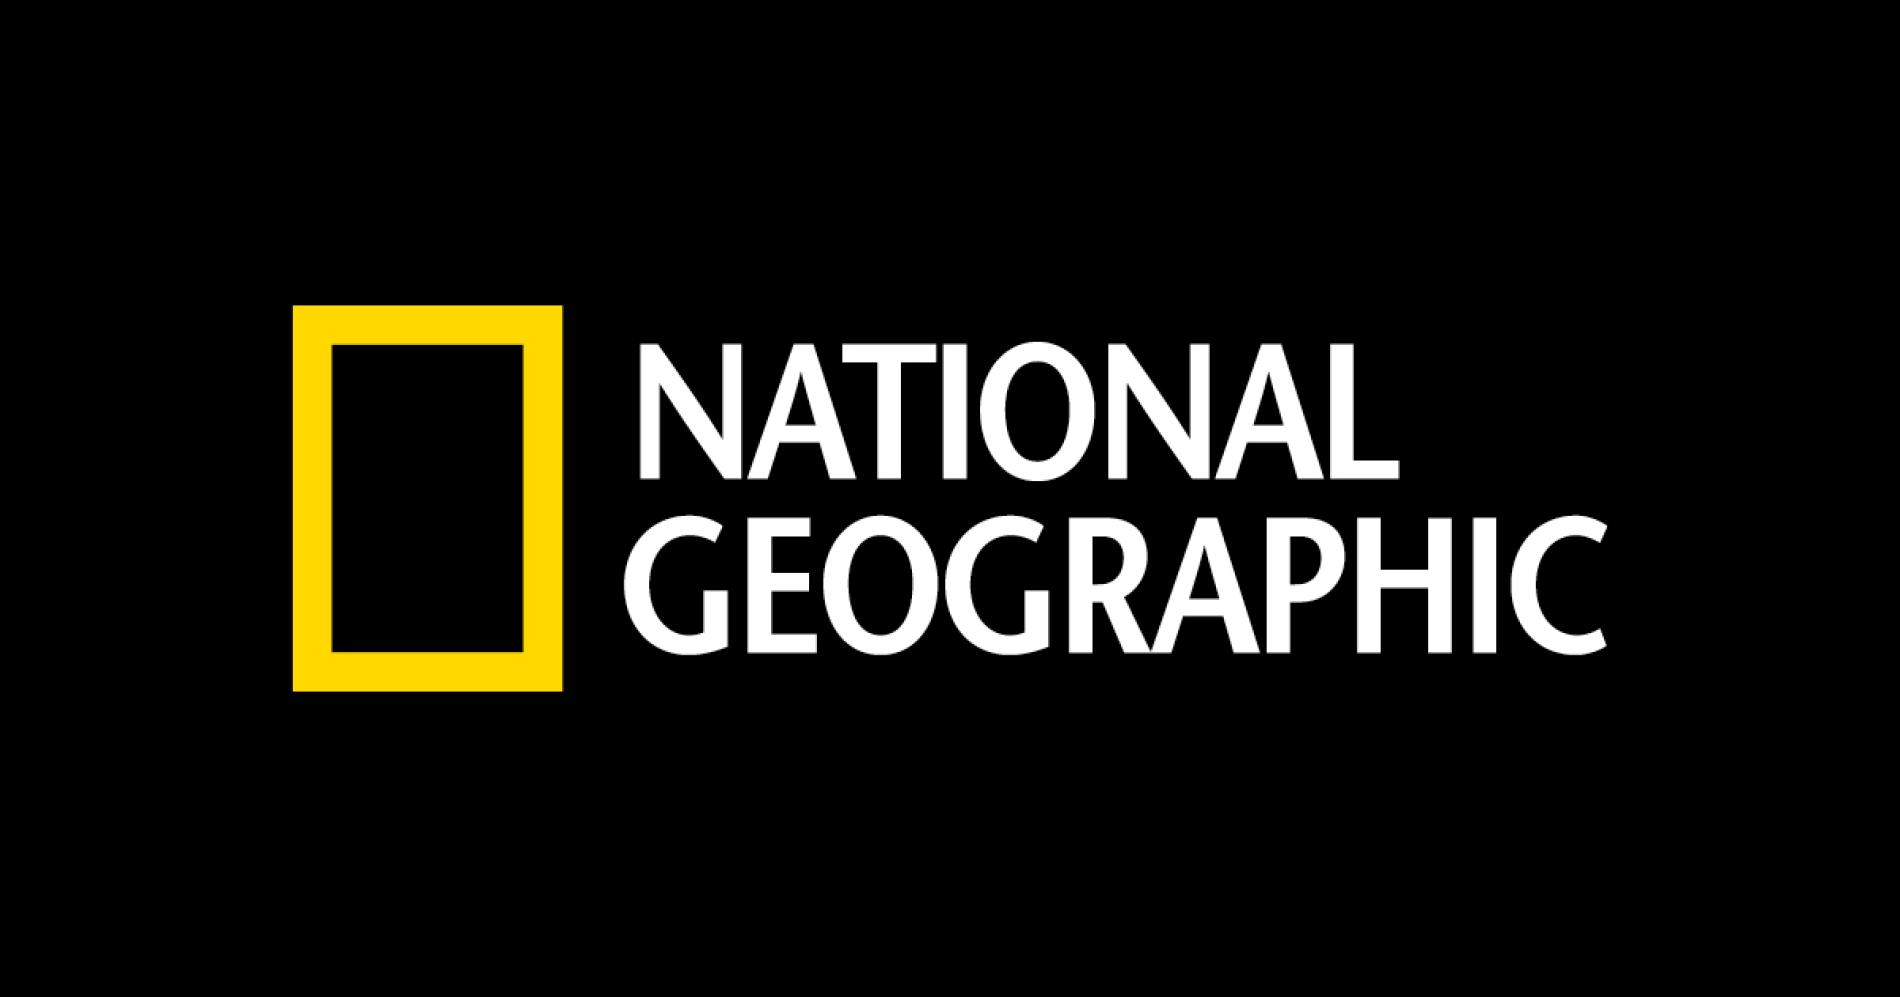 National Geographic Logo PNG - 105034